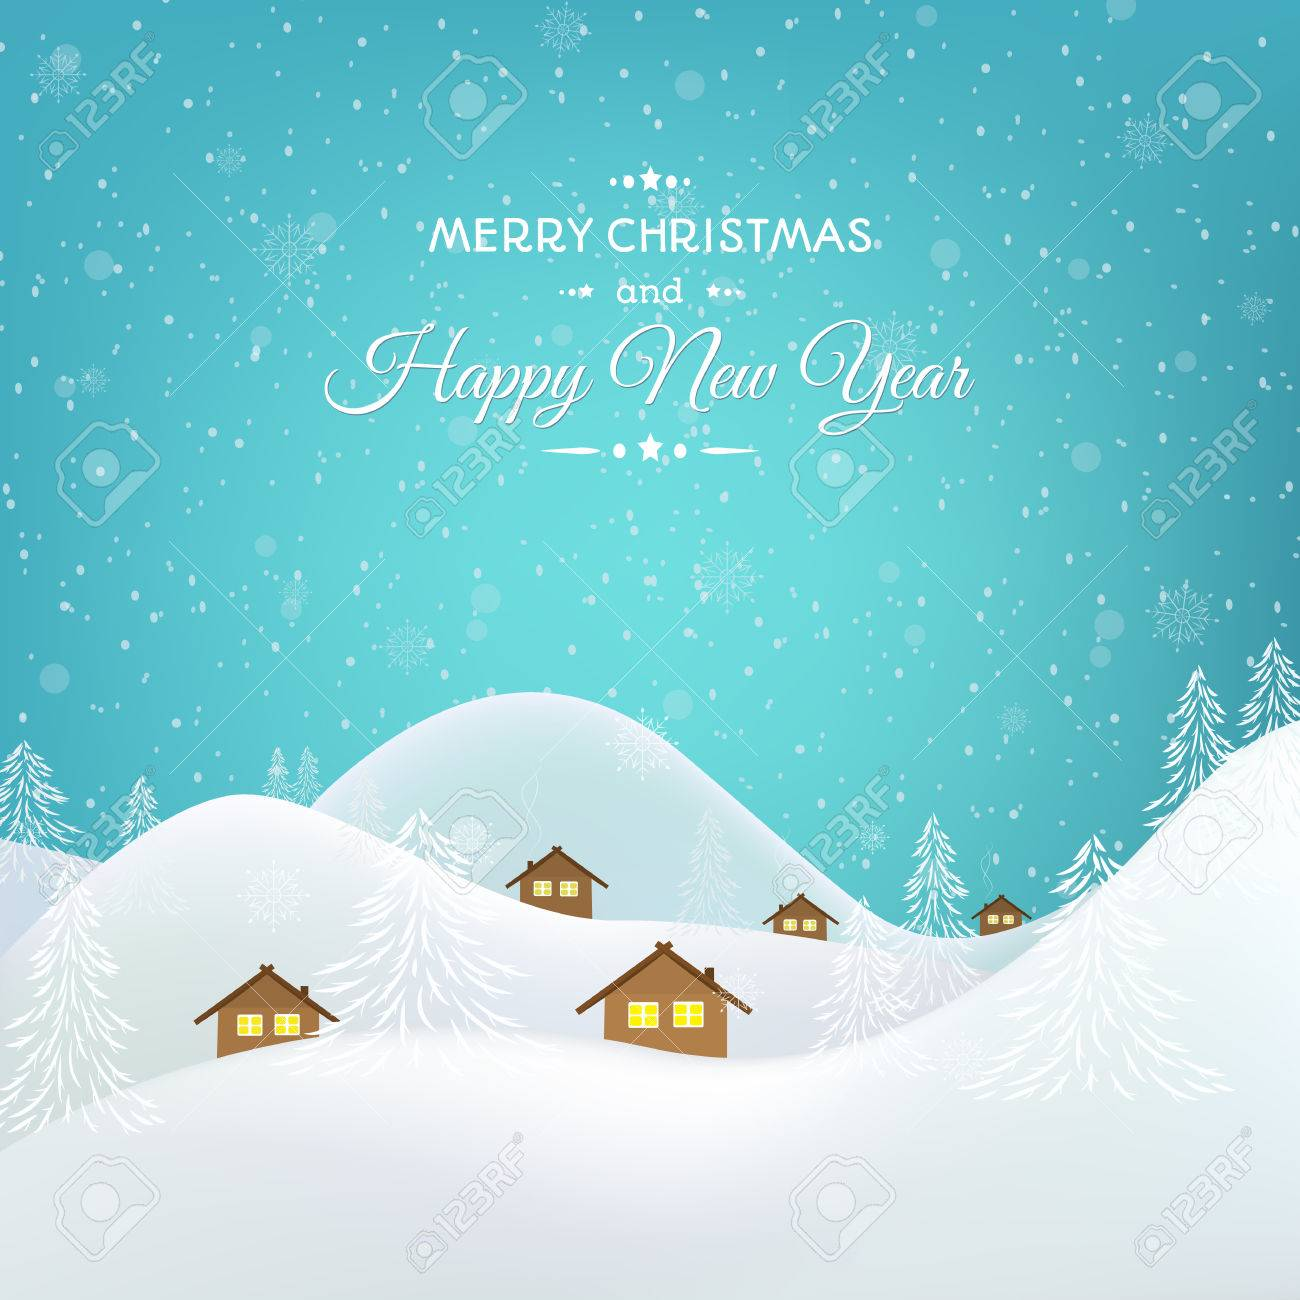 New year christmas greeting card template winter snow village new year christmas greeting card template winter snow village mountains forest valley scenic landscape m4hsunfo